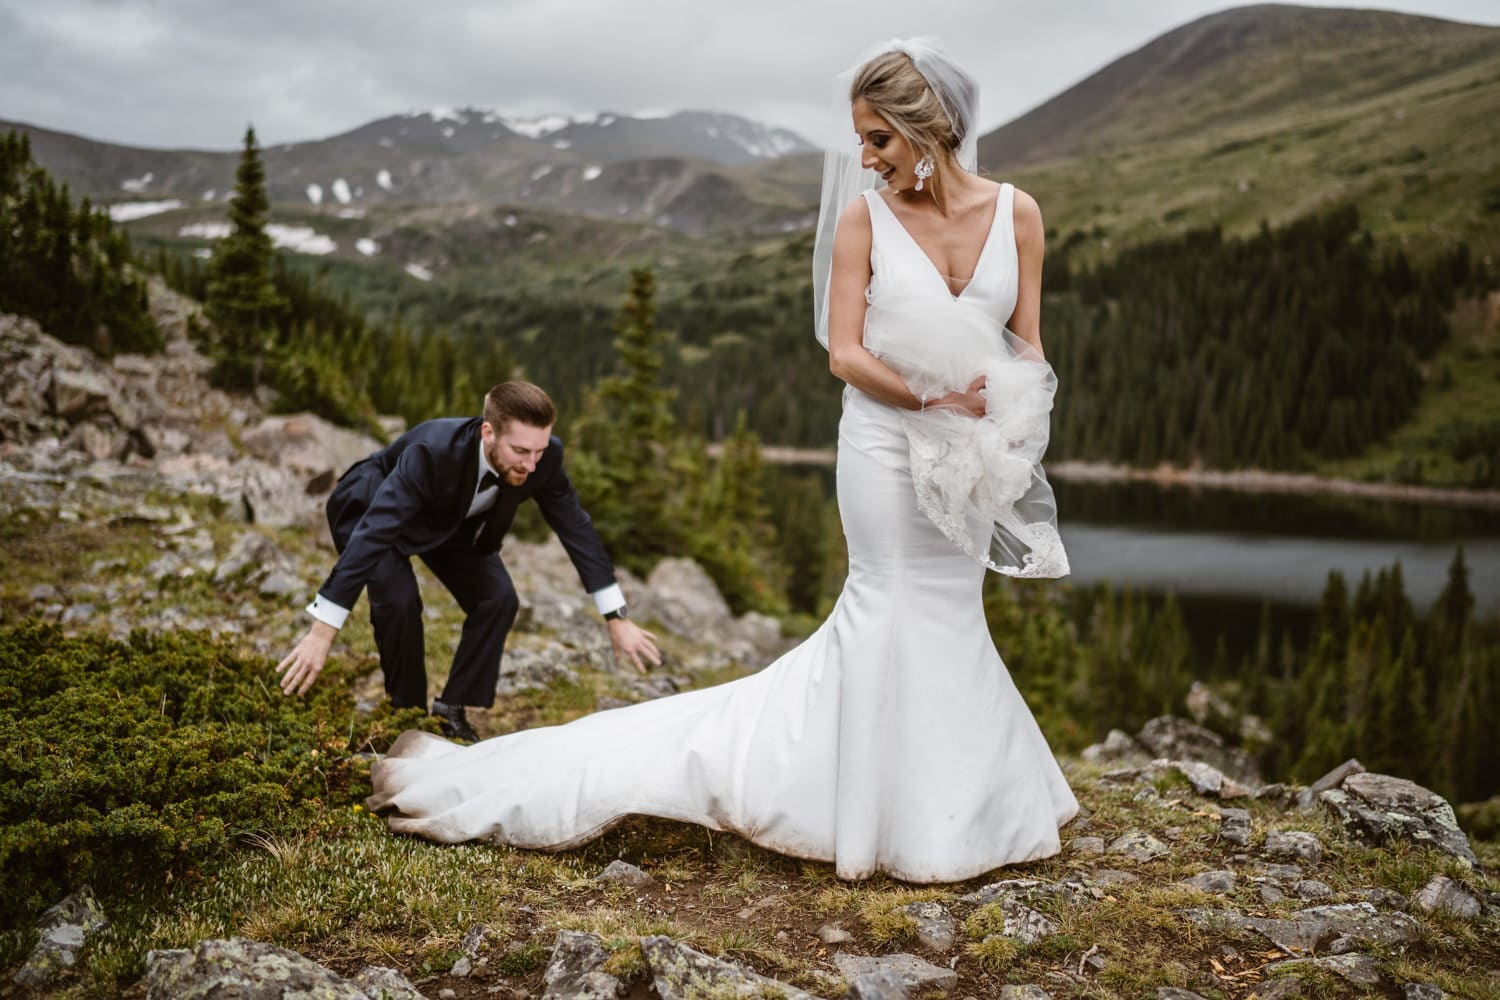 Bride and Groom Vow Ceremony at Georgetown, CO Elopement